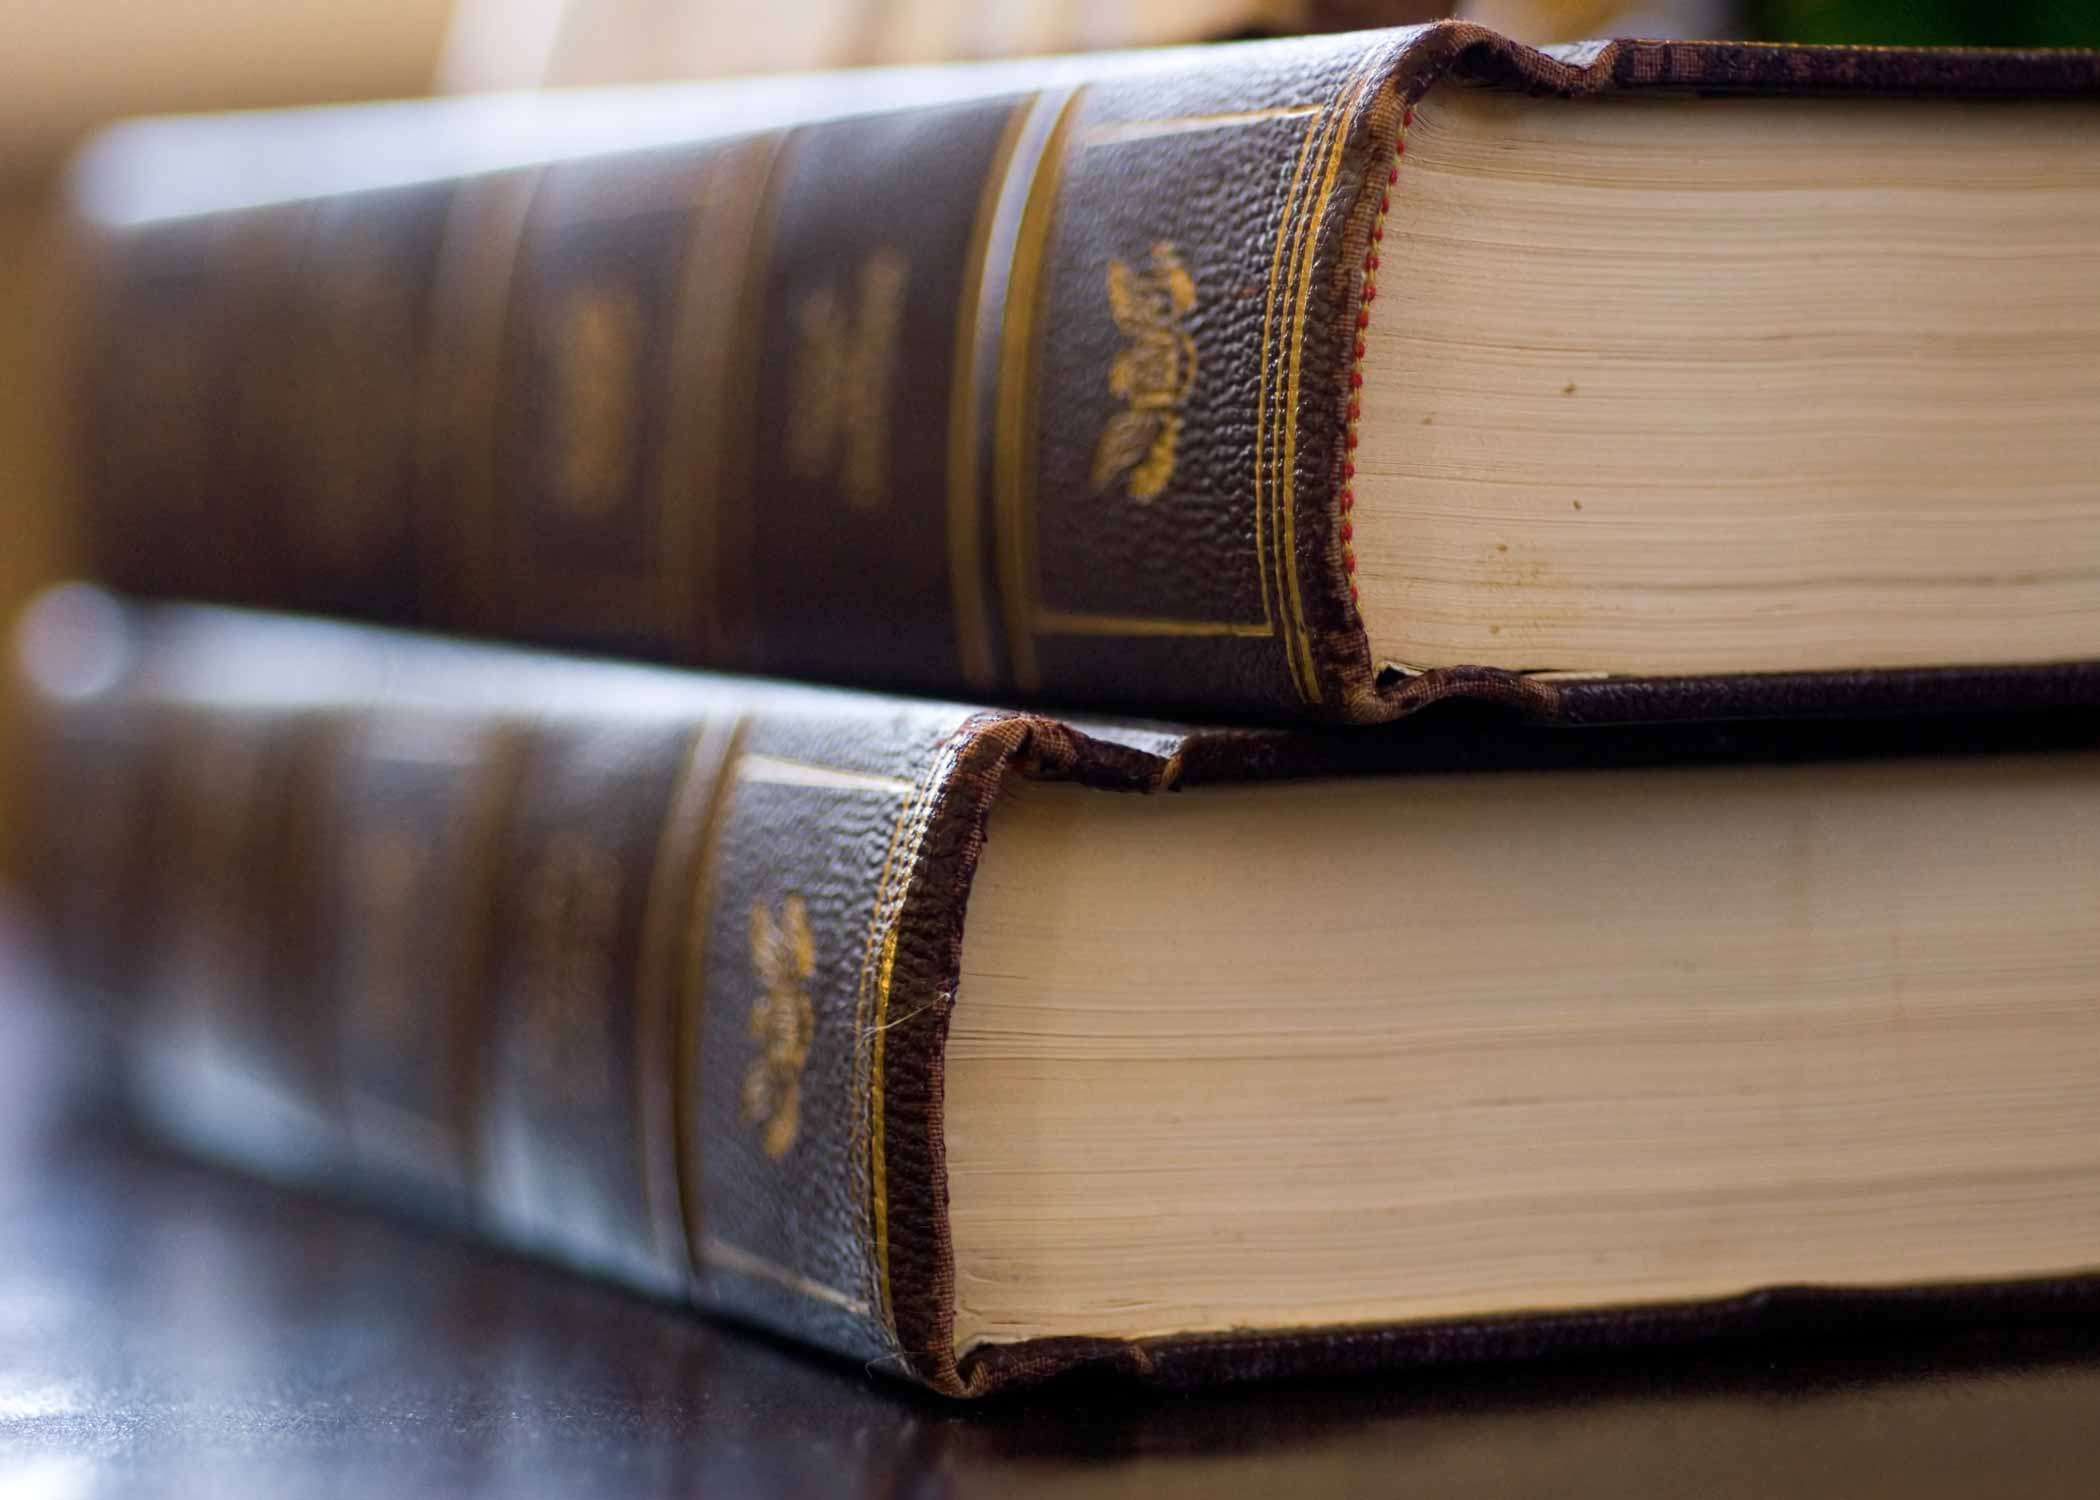 close up shot of two brown books stacked on top of each other